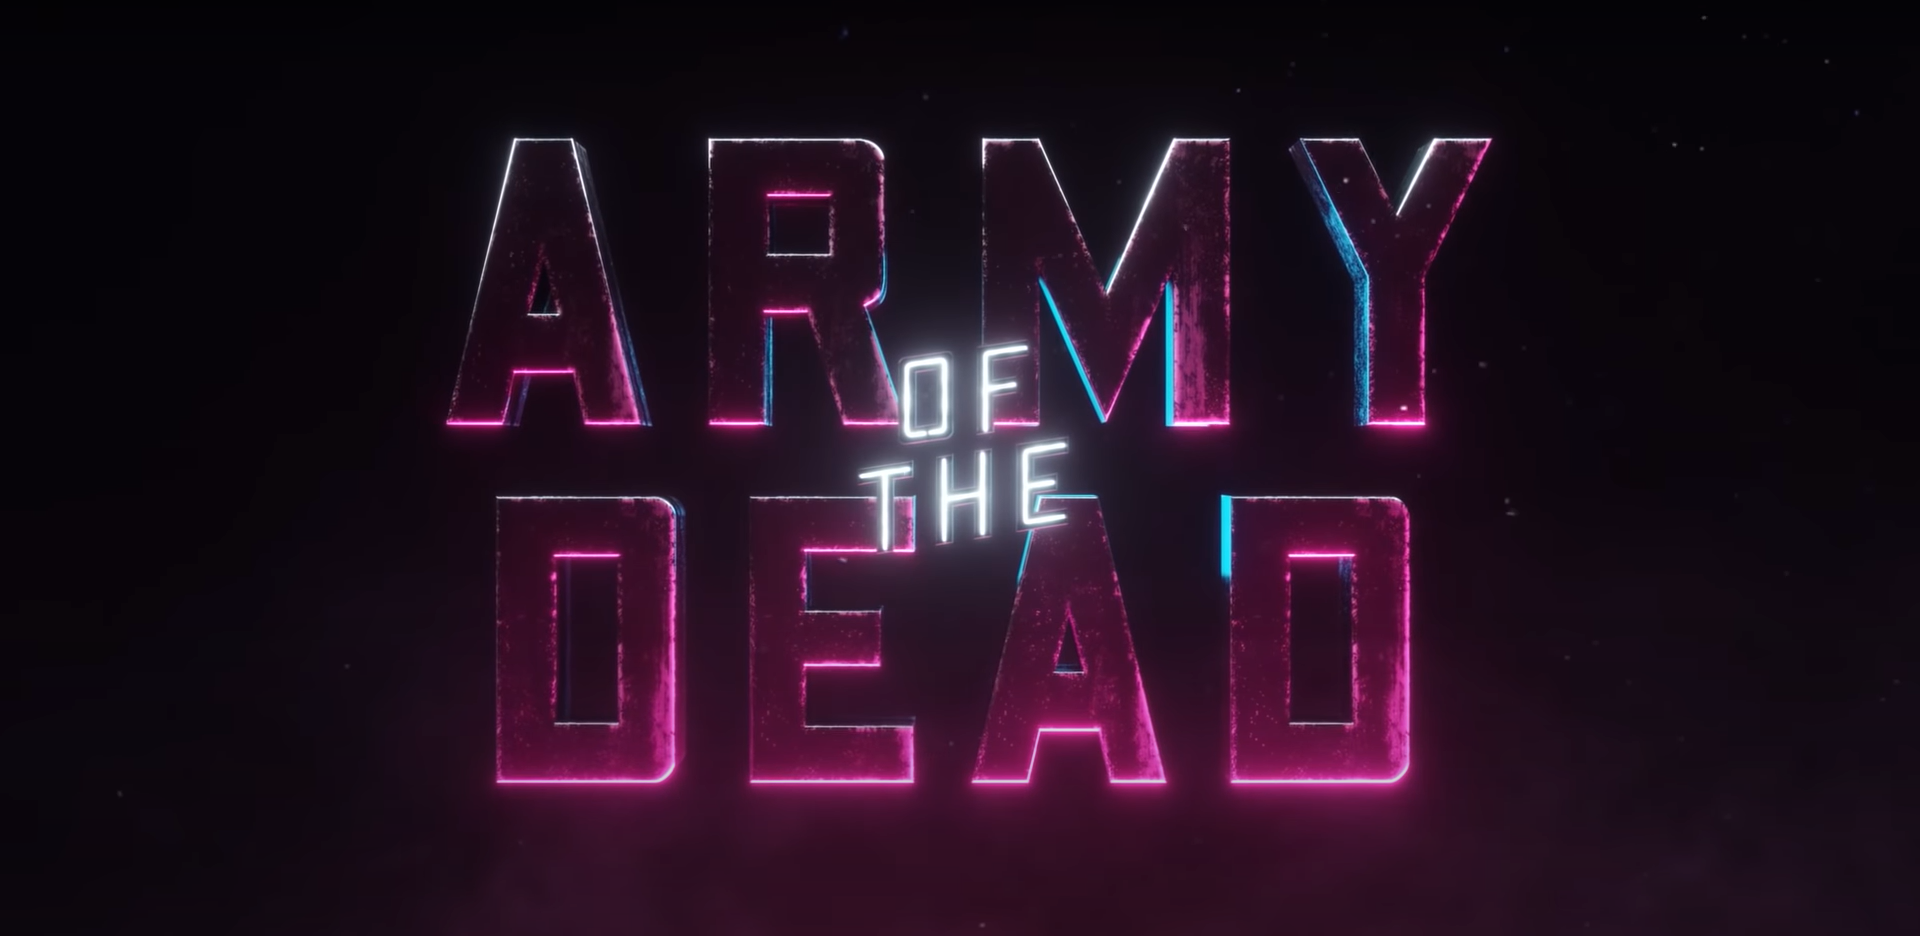 'Army of the Dead' teaser released by Netflix, another big action flick for Zack Snyder